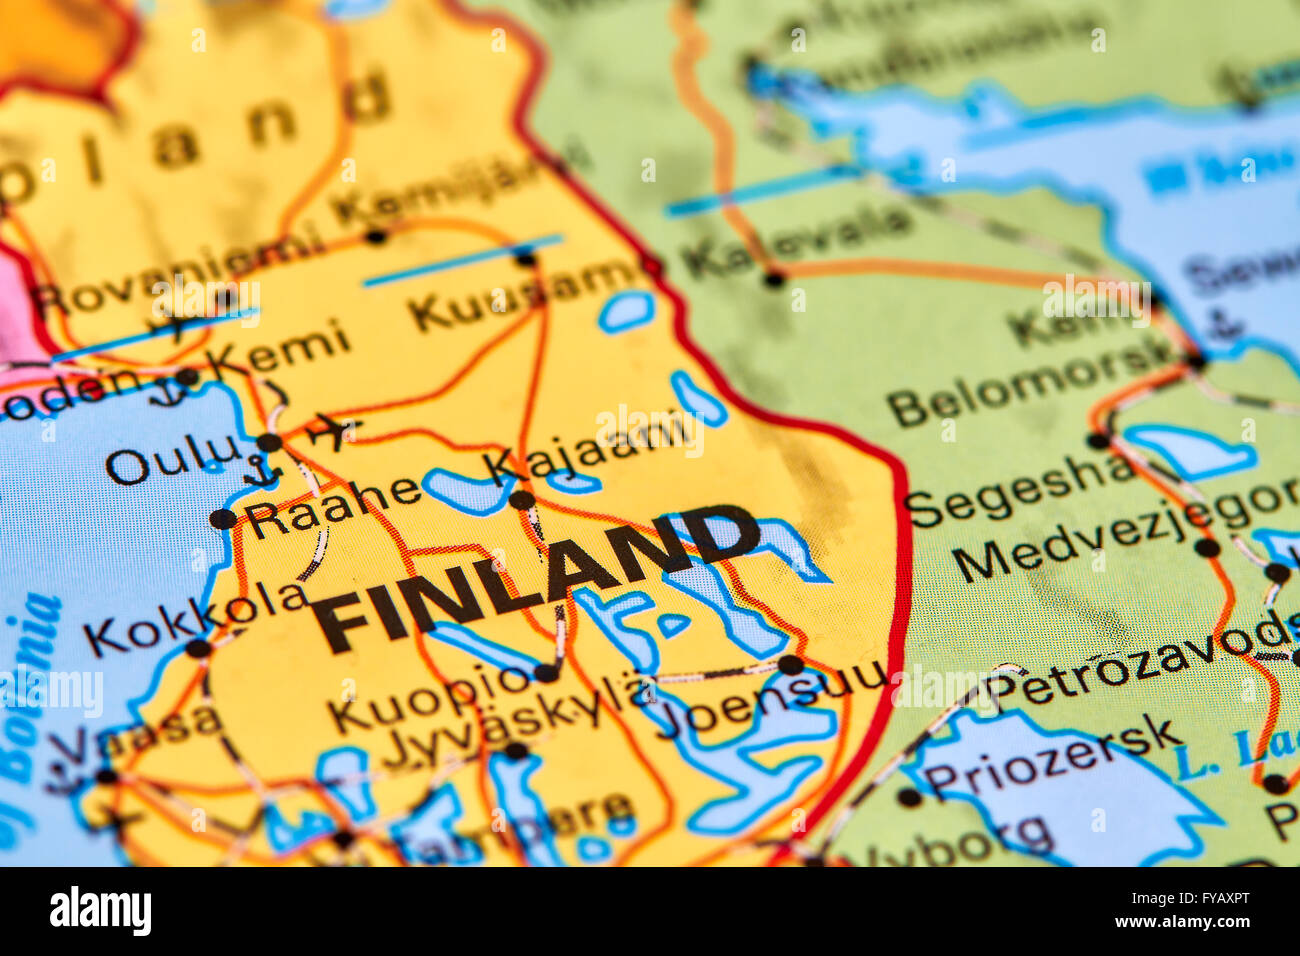 Finland country in europe on the world map stock photo 102888096 finland country in europe on the world map gumiabroncs Image collections